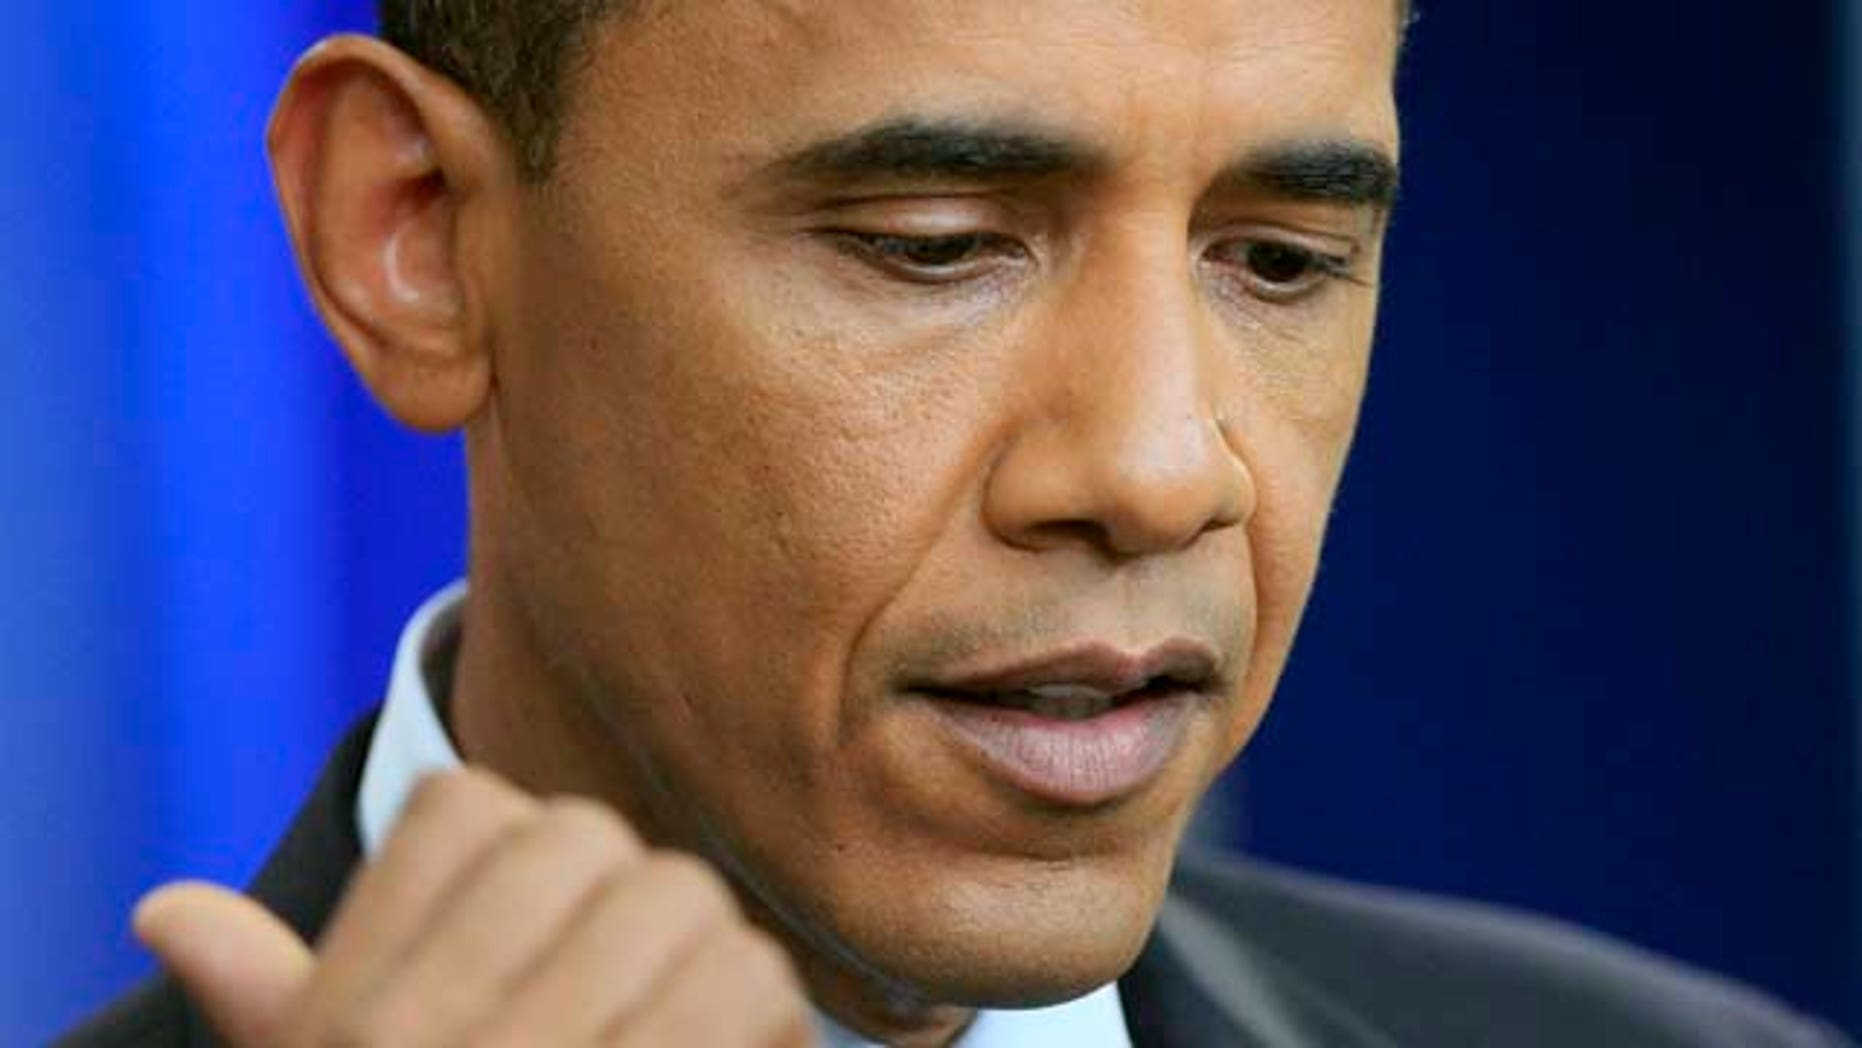 President Barack Obama makes a statement in the Brady Briefing Room at the White House in Washington, Friday, July 22, 2011.  (AP Photo/Manuel Balce Ceneta)